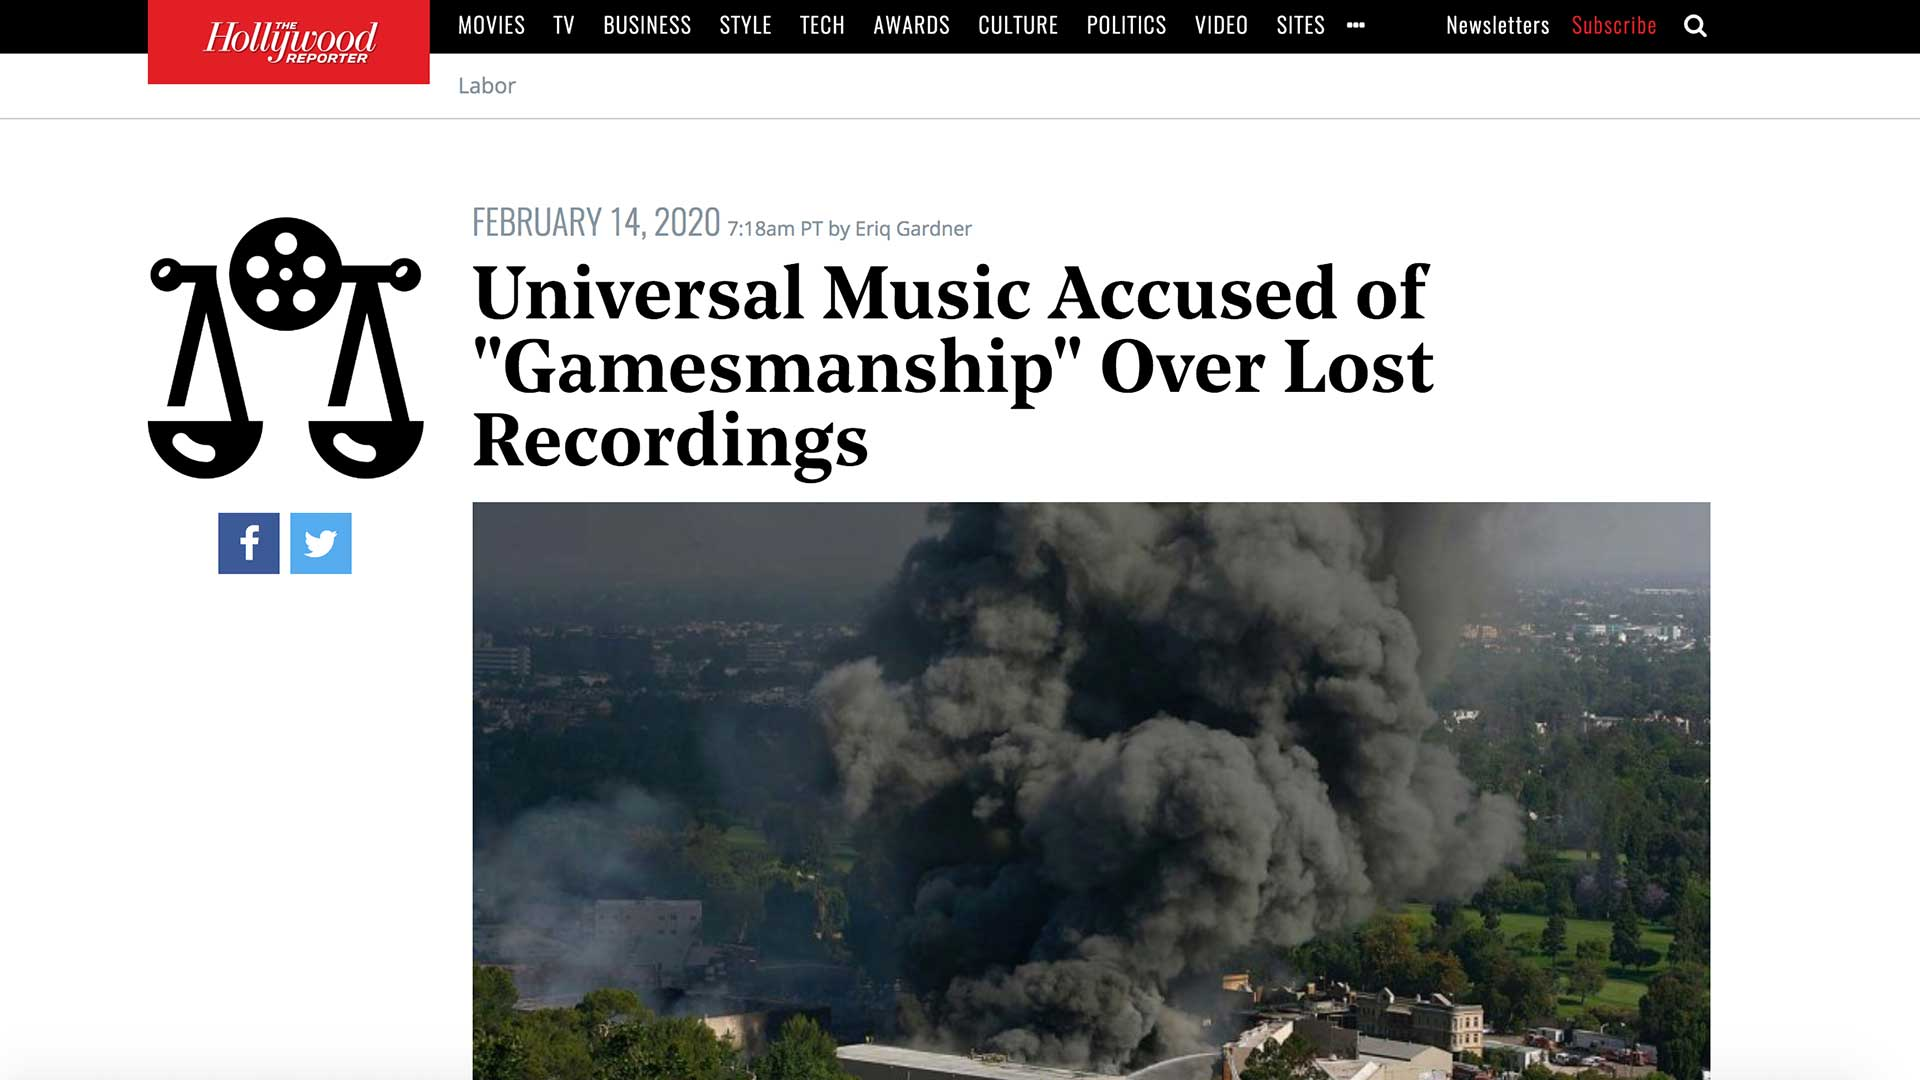 """Fairness Rocks News Universal Music Accused of """"Gamesmanship"""" Over Lost Recordings"""